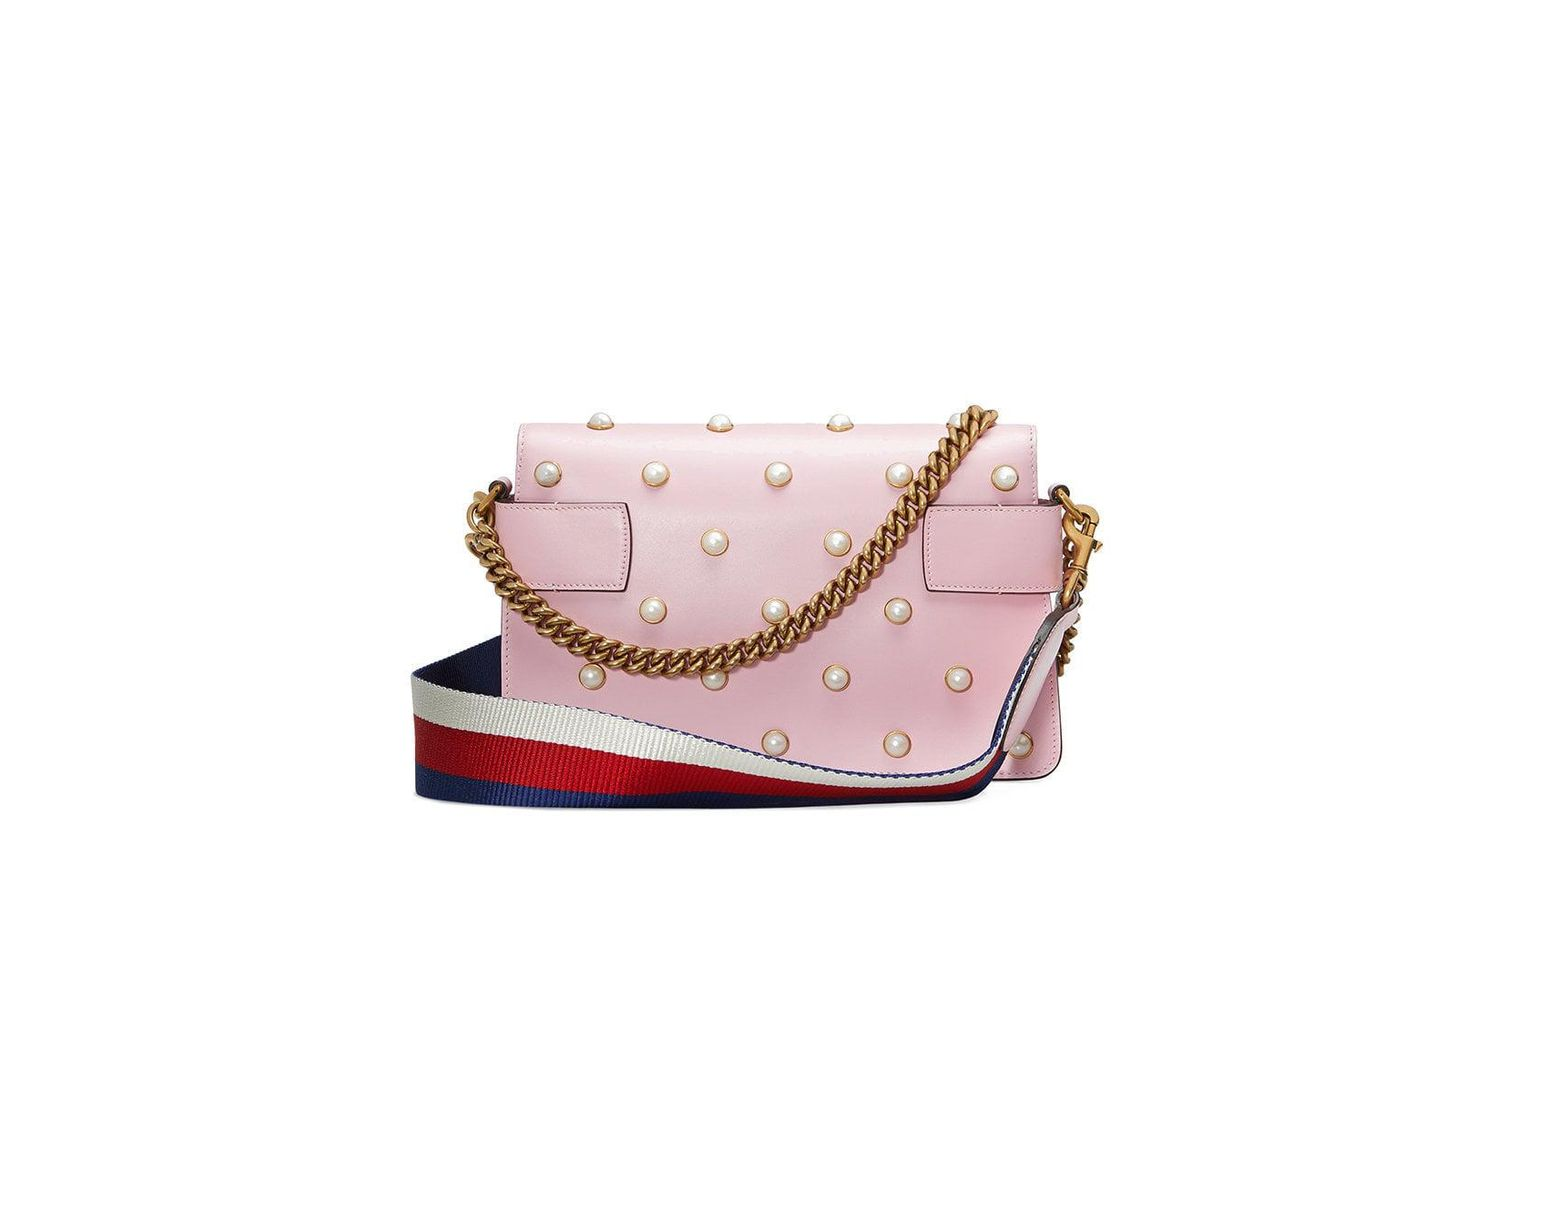 36383a314e9 Lyst - Gucci Broadway Leather Mini Bag in Pink - Save 30%